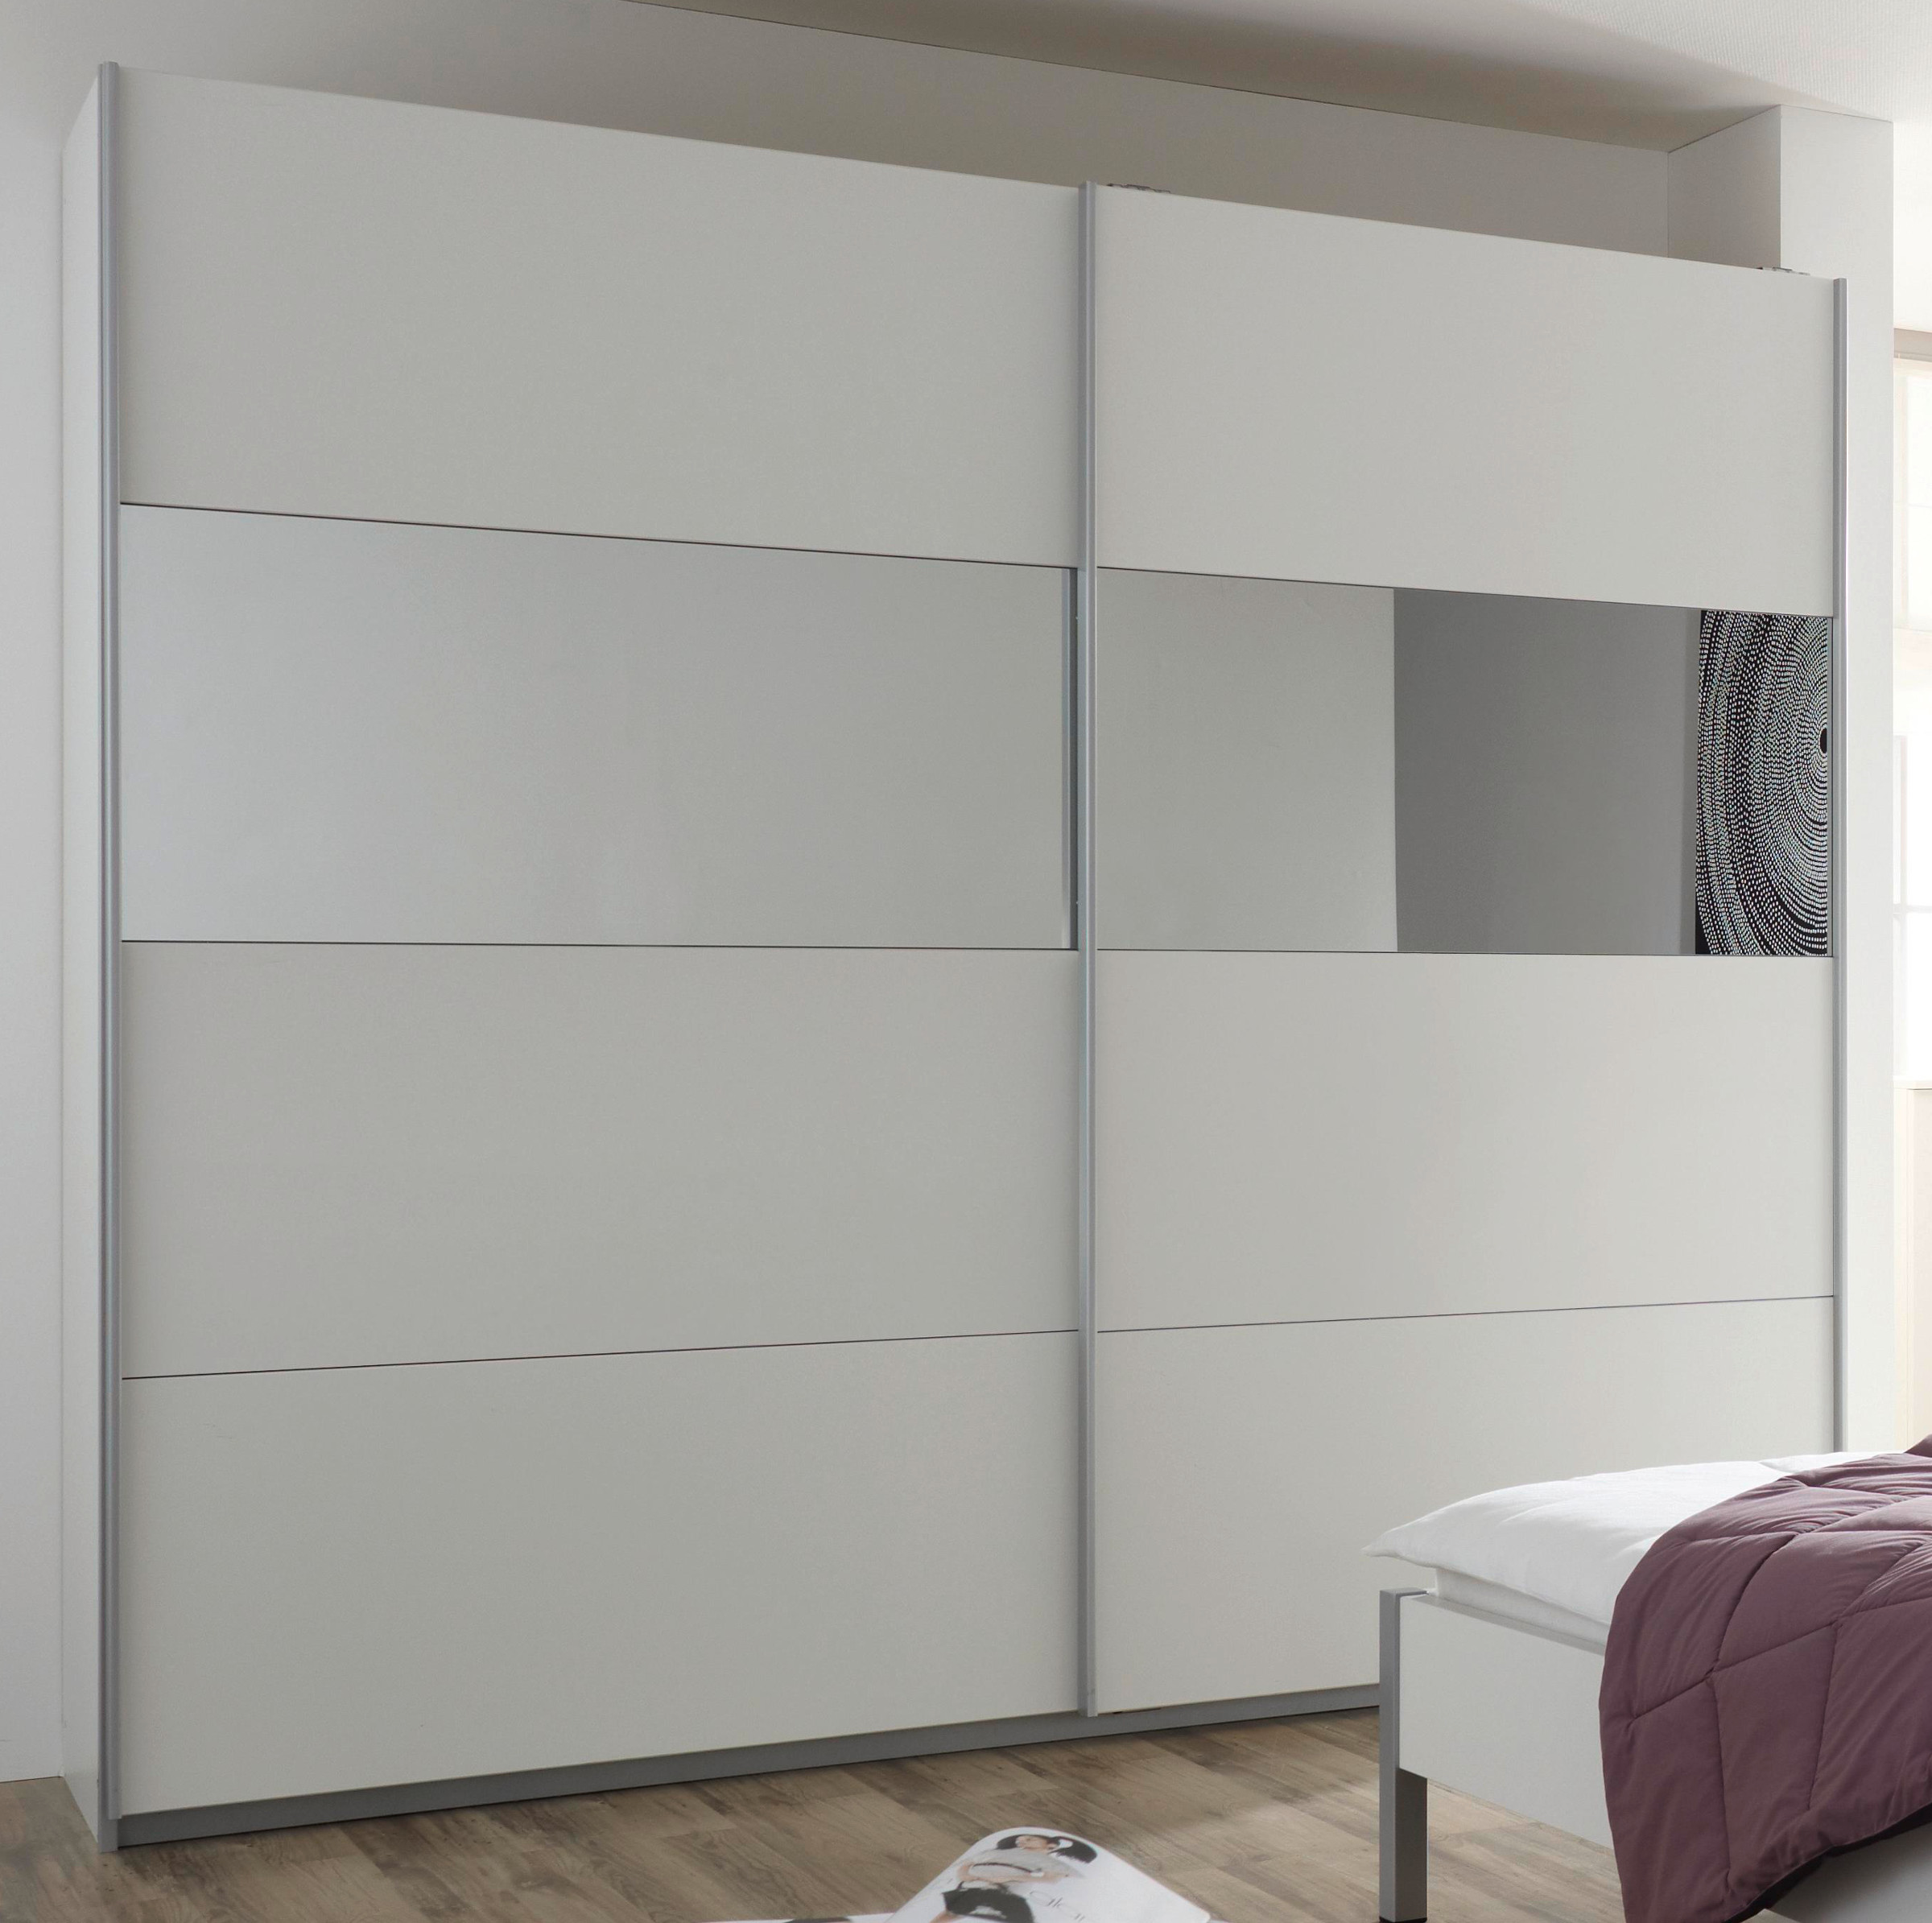 rauch schwebet renschrank quadra alpinwei spiegel 5 breiten 2 h hen ebay. Black Bedroom Furniture Sets. Home Design Ideas